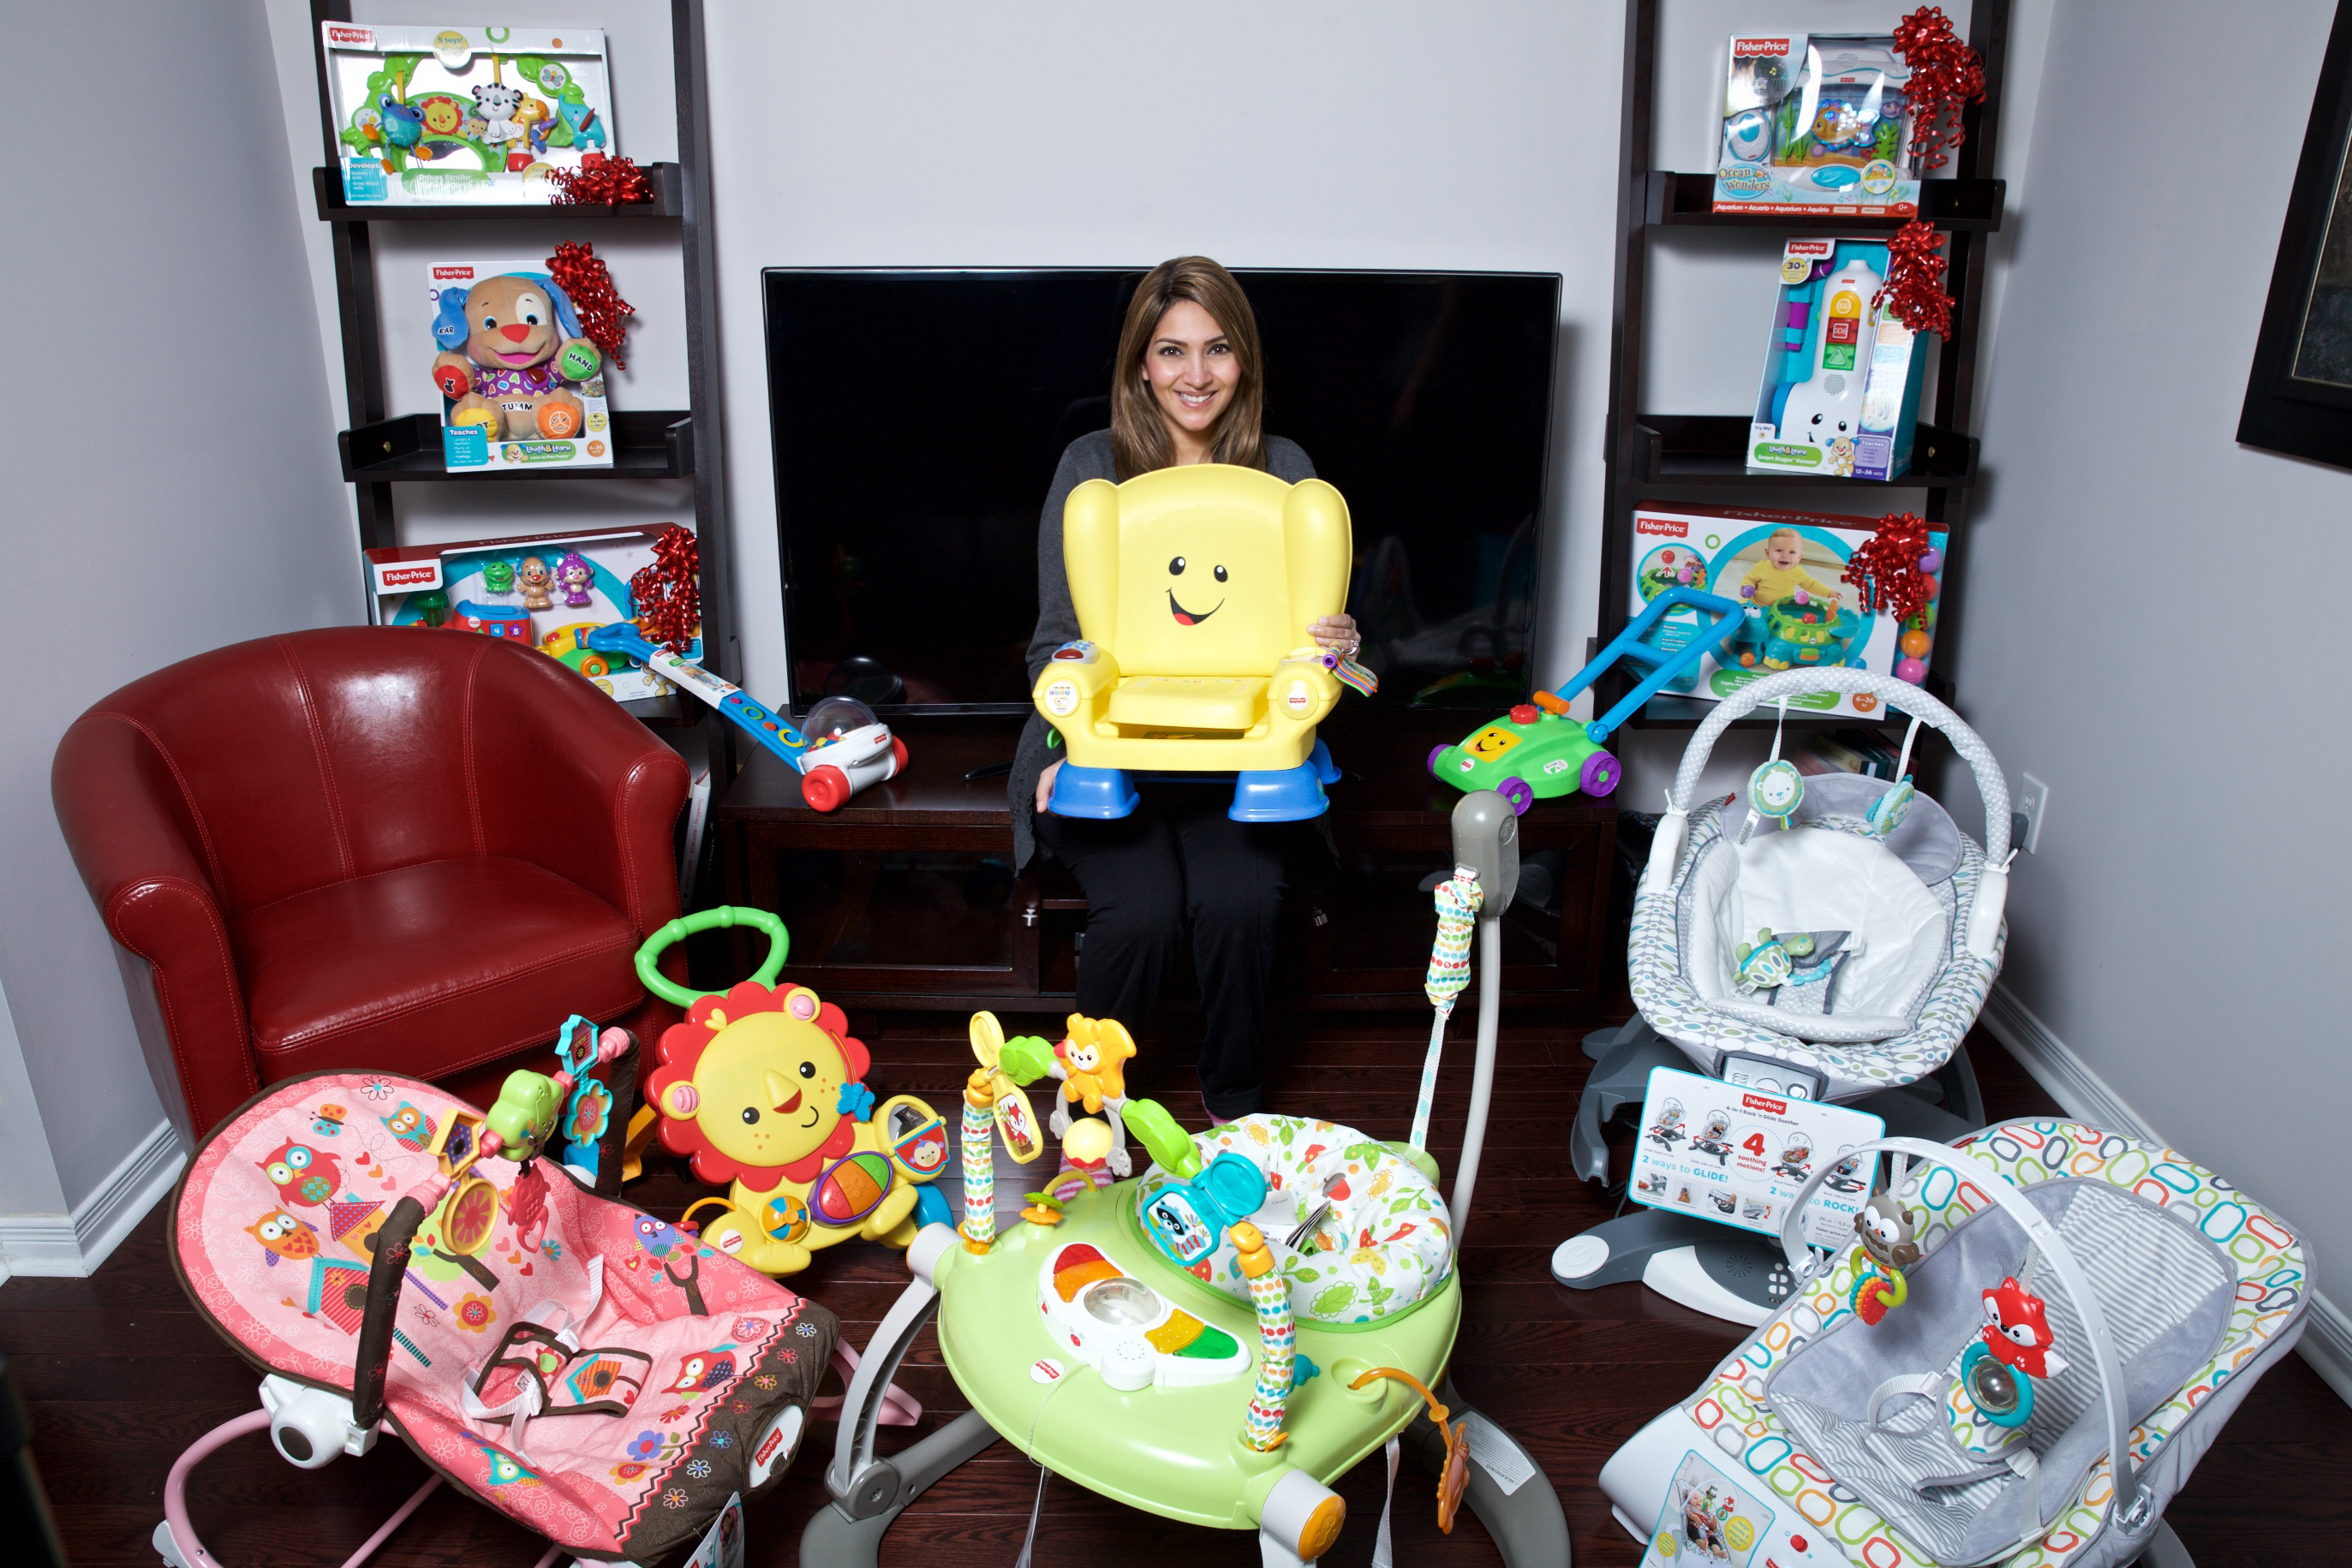 Food, Friends and Fisher Price #fpshowroom